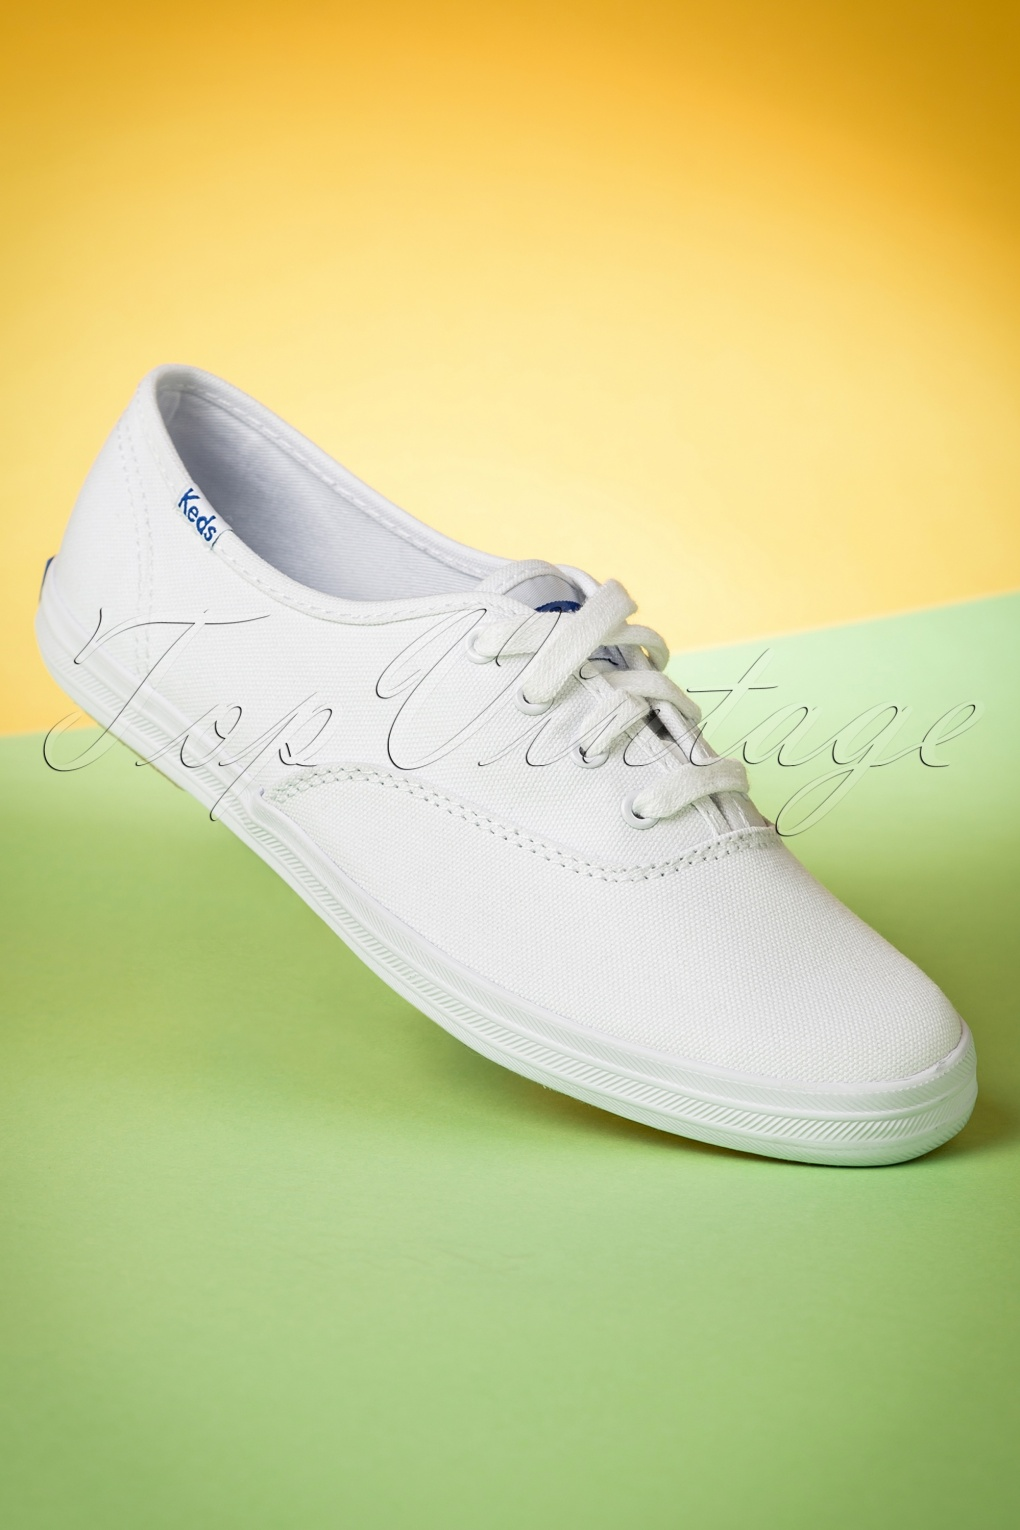 Retro Vintage Flats and Low Heel Shoes 50s Champion Core Text Sneakers in White £52.91 AT vintagedancer.com